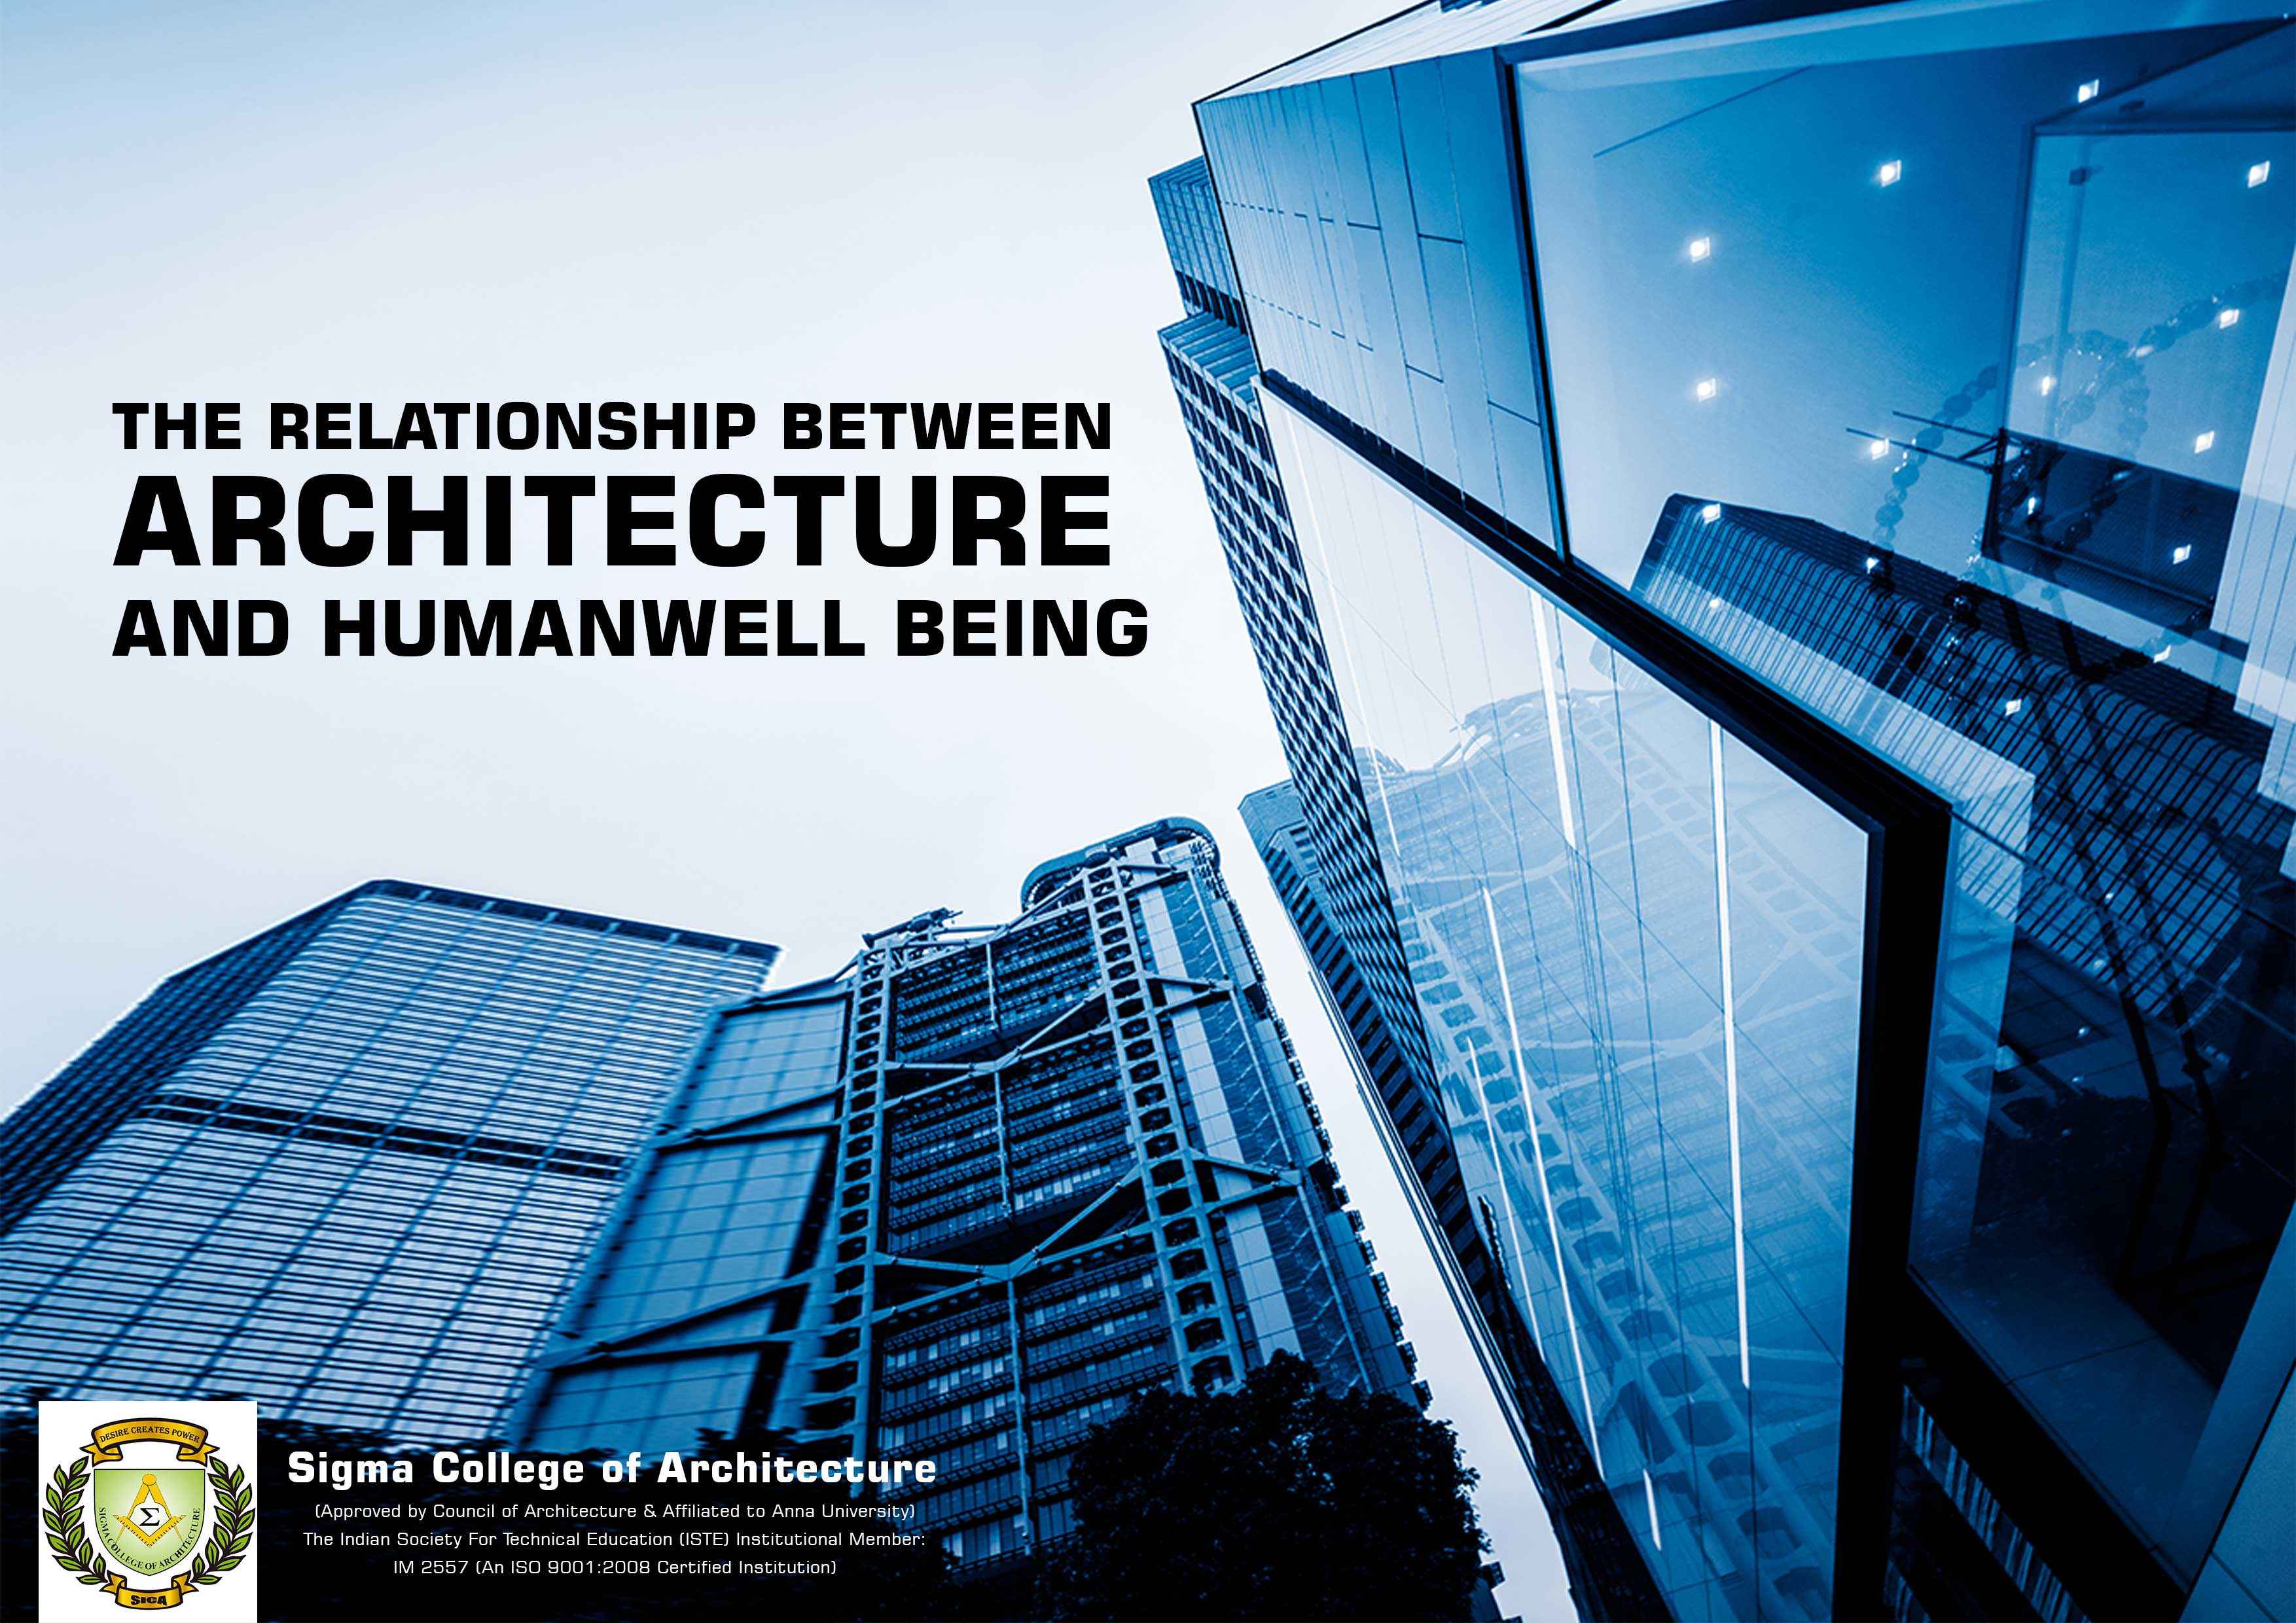 The Relationship Between Architecture and Human Well Being